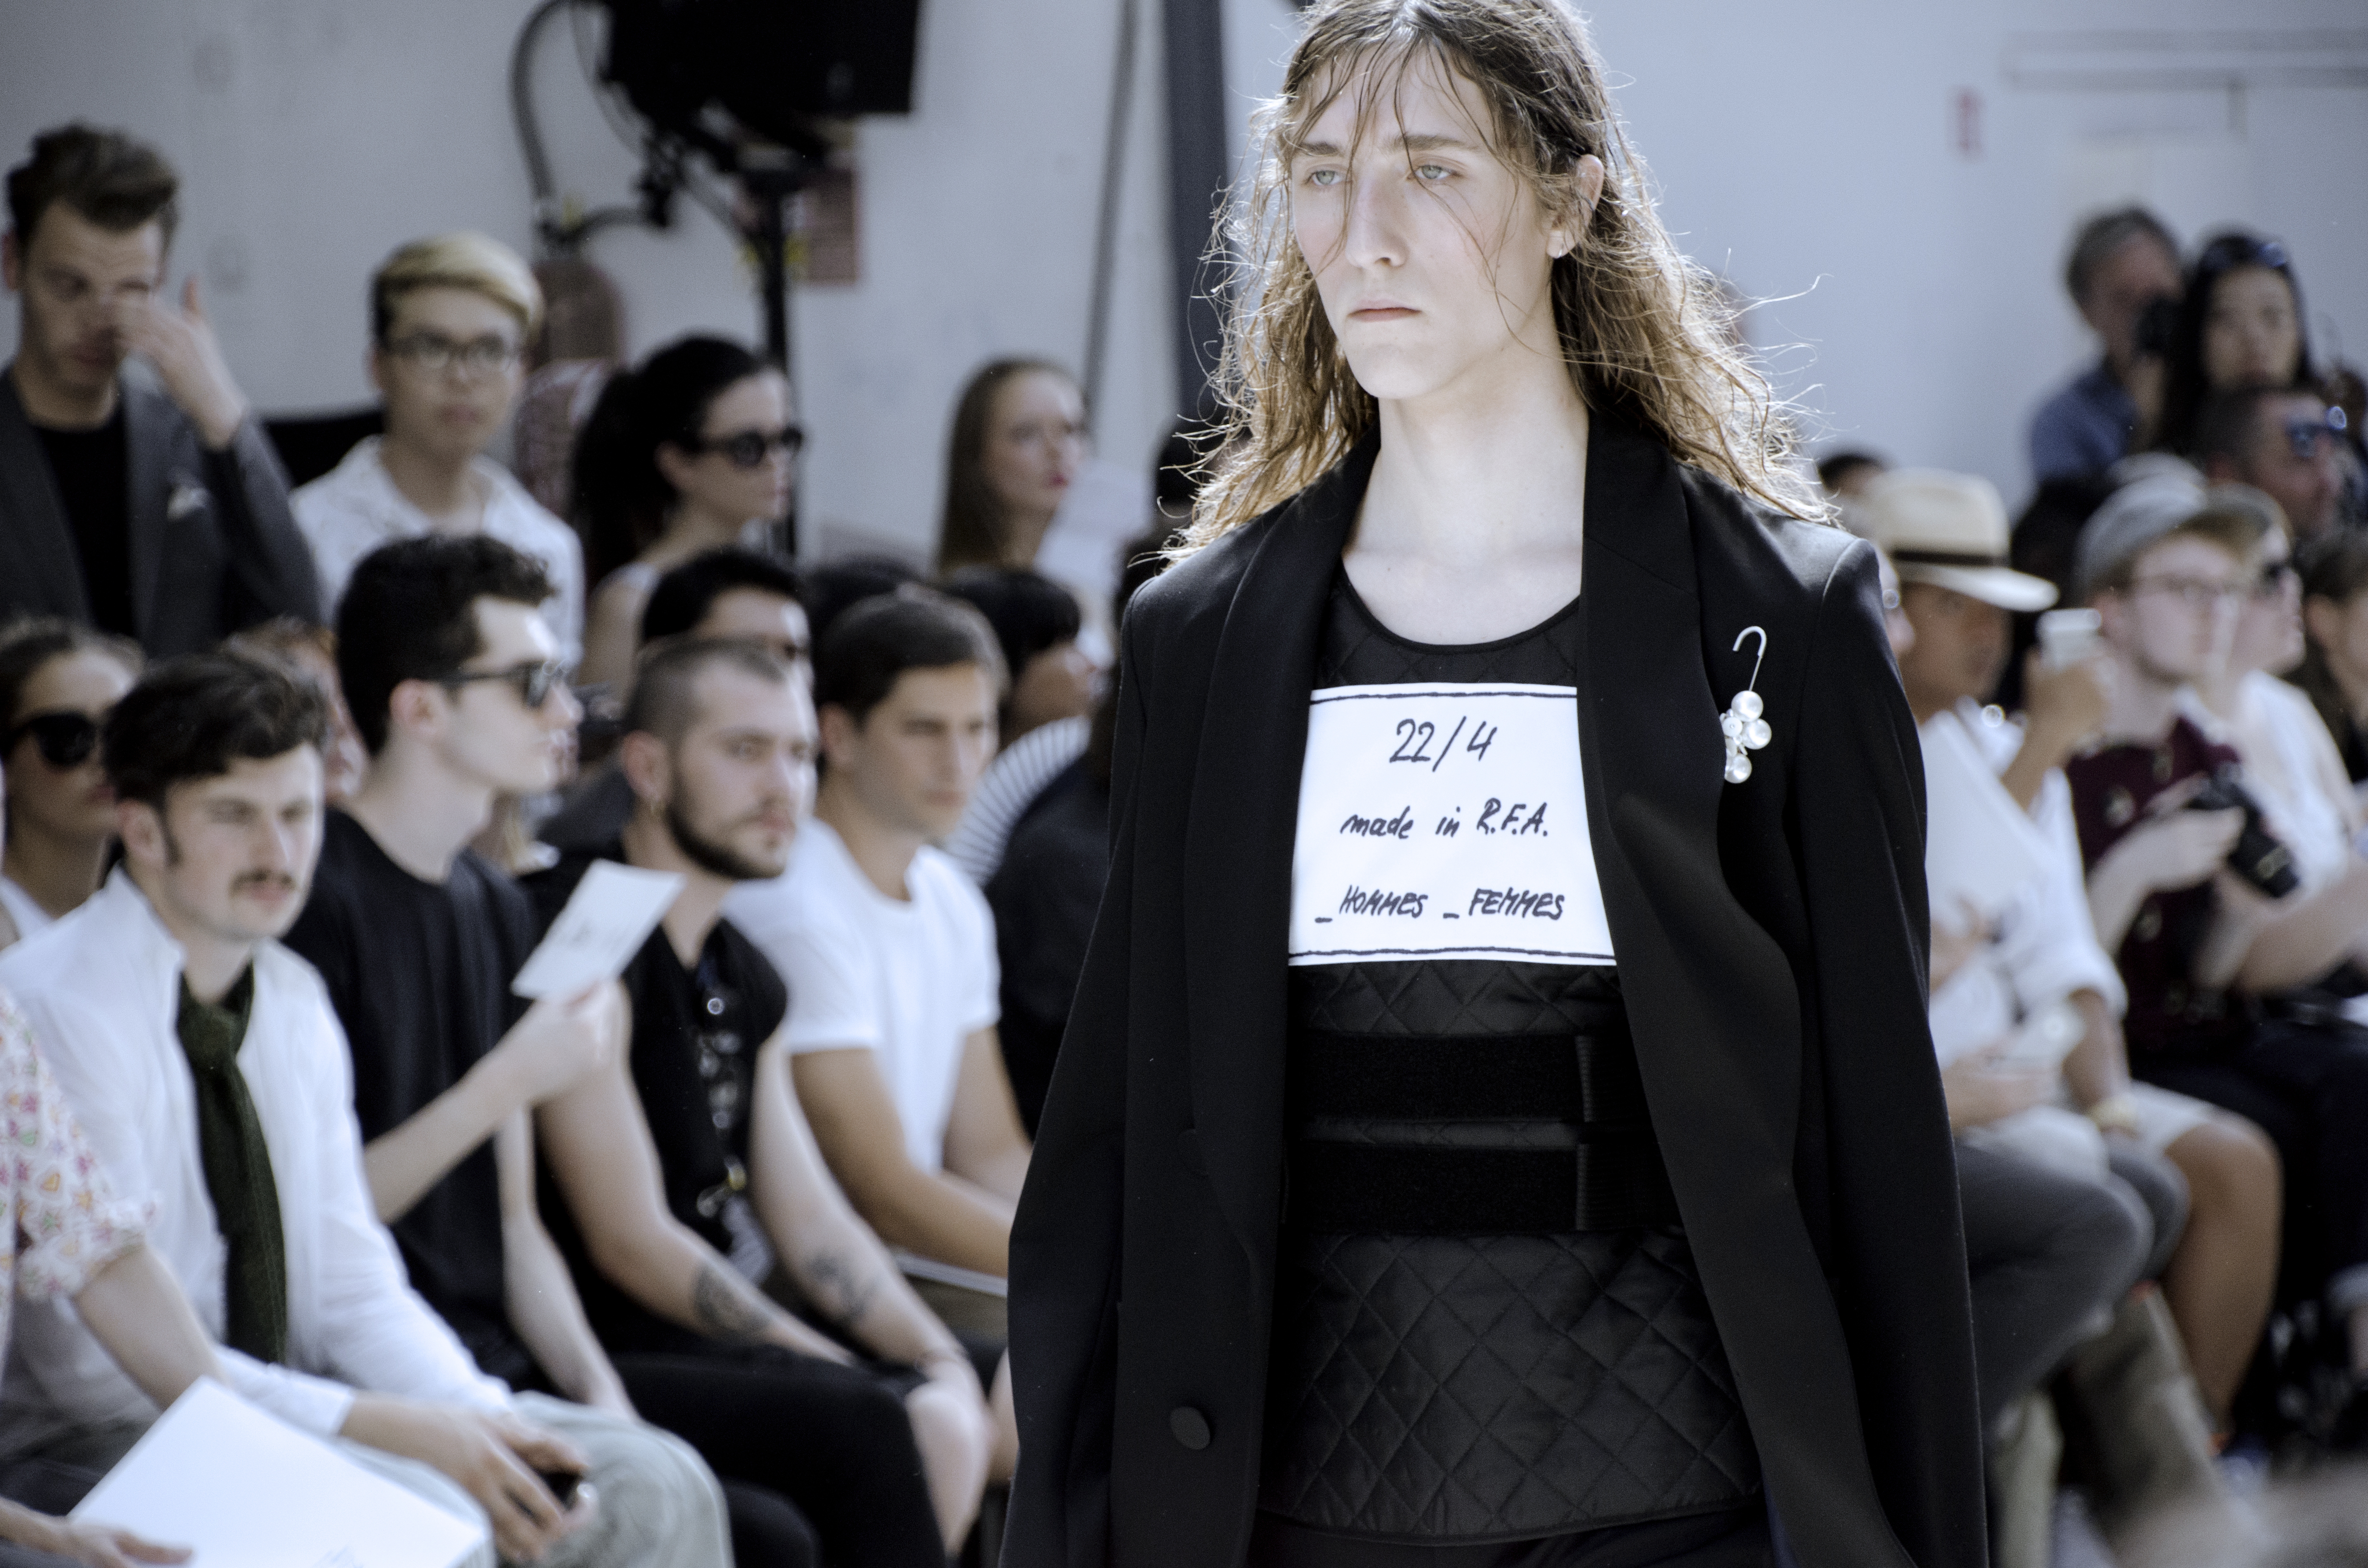 22/4_HOMMES SS16